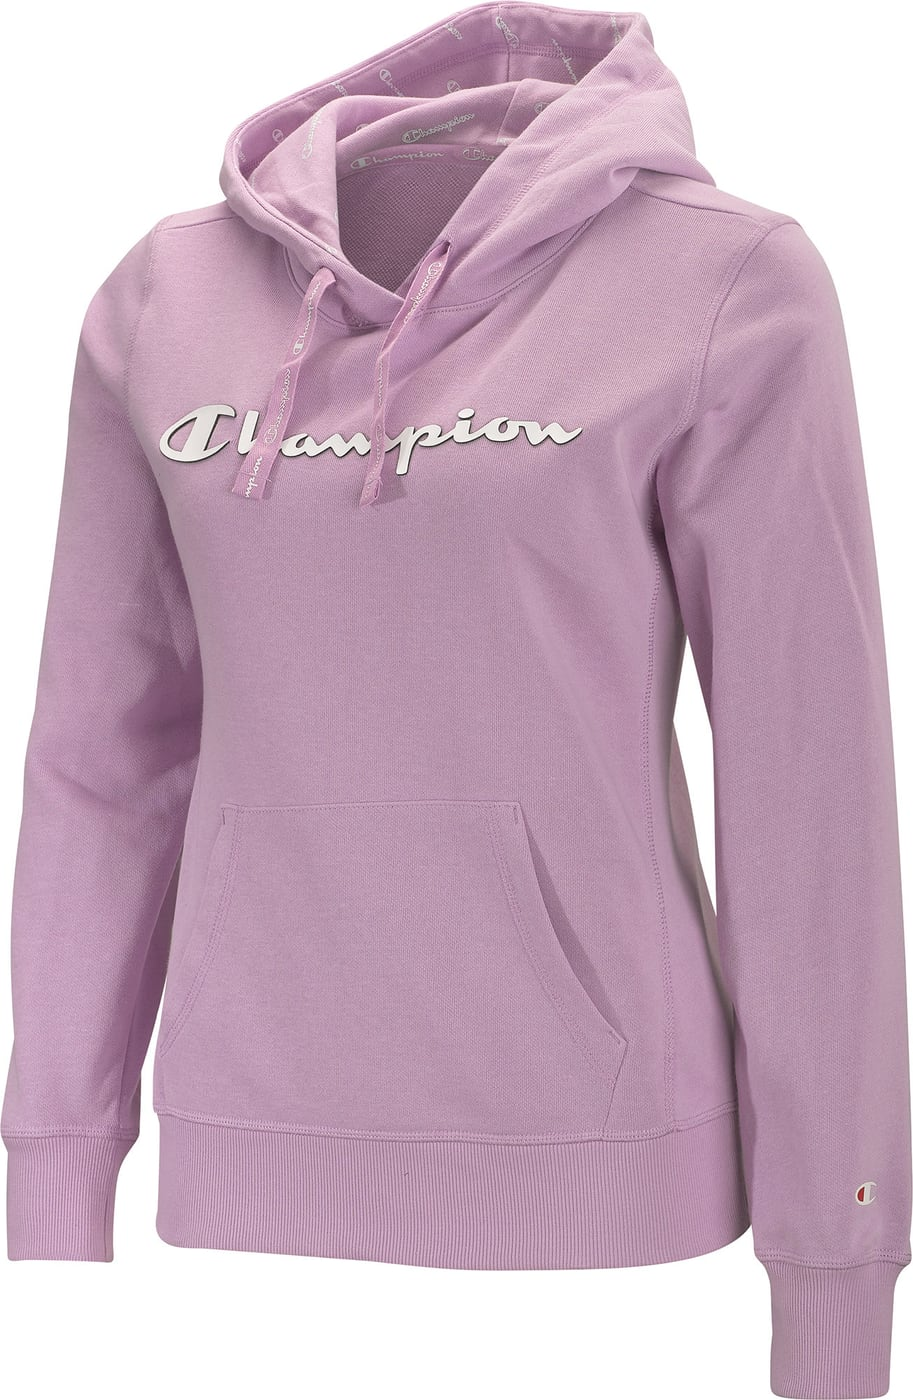 Champion Legacy Shirt Sweat Capuche Pour Sweatshirt Women À Hooded 8nNPX0Owk